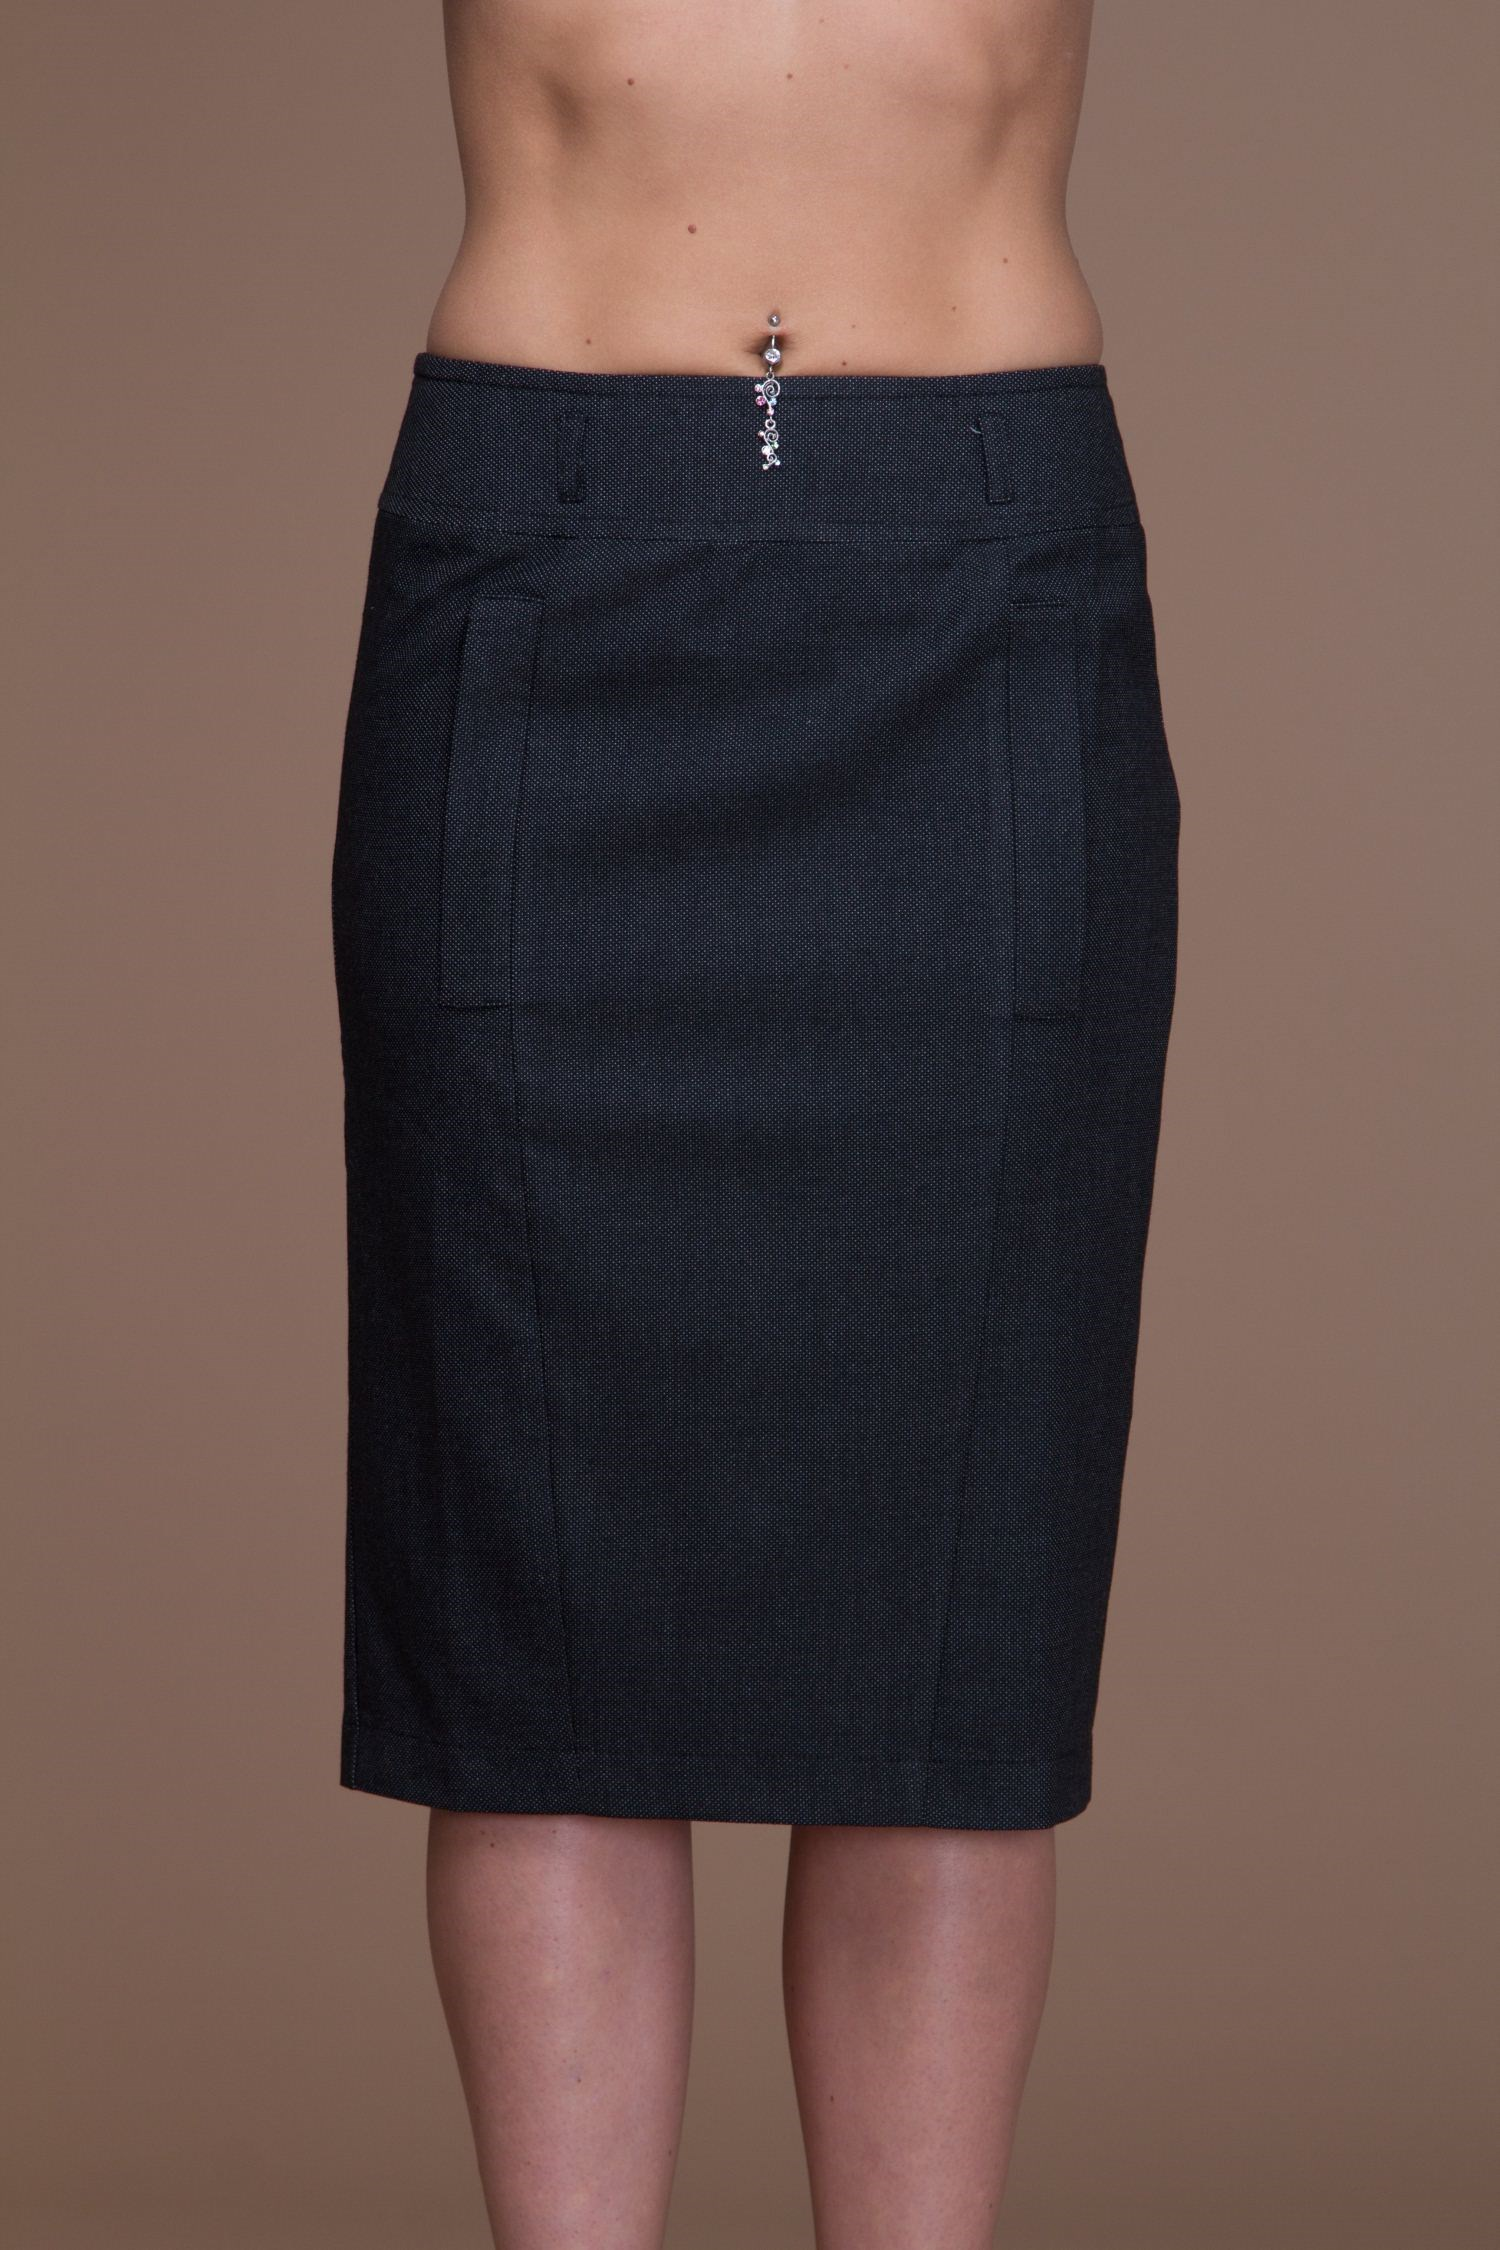 Office skirt with pockets and zipper in the back. glen plaid zip back skirt